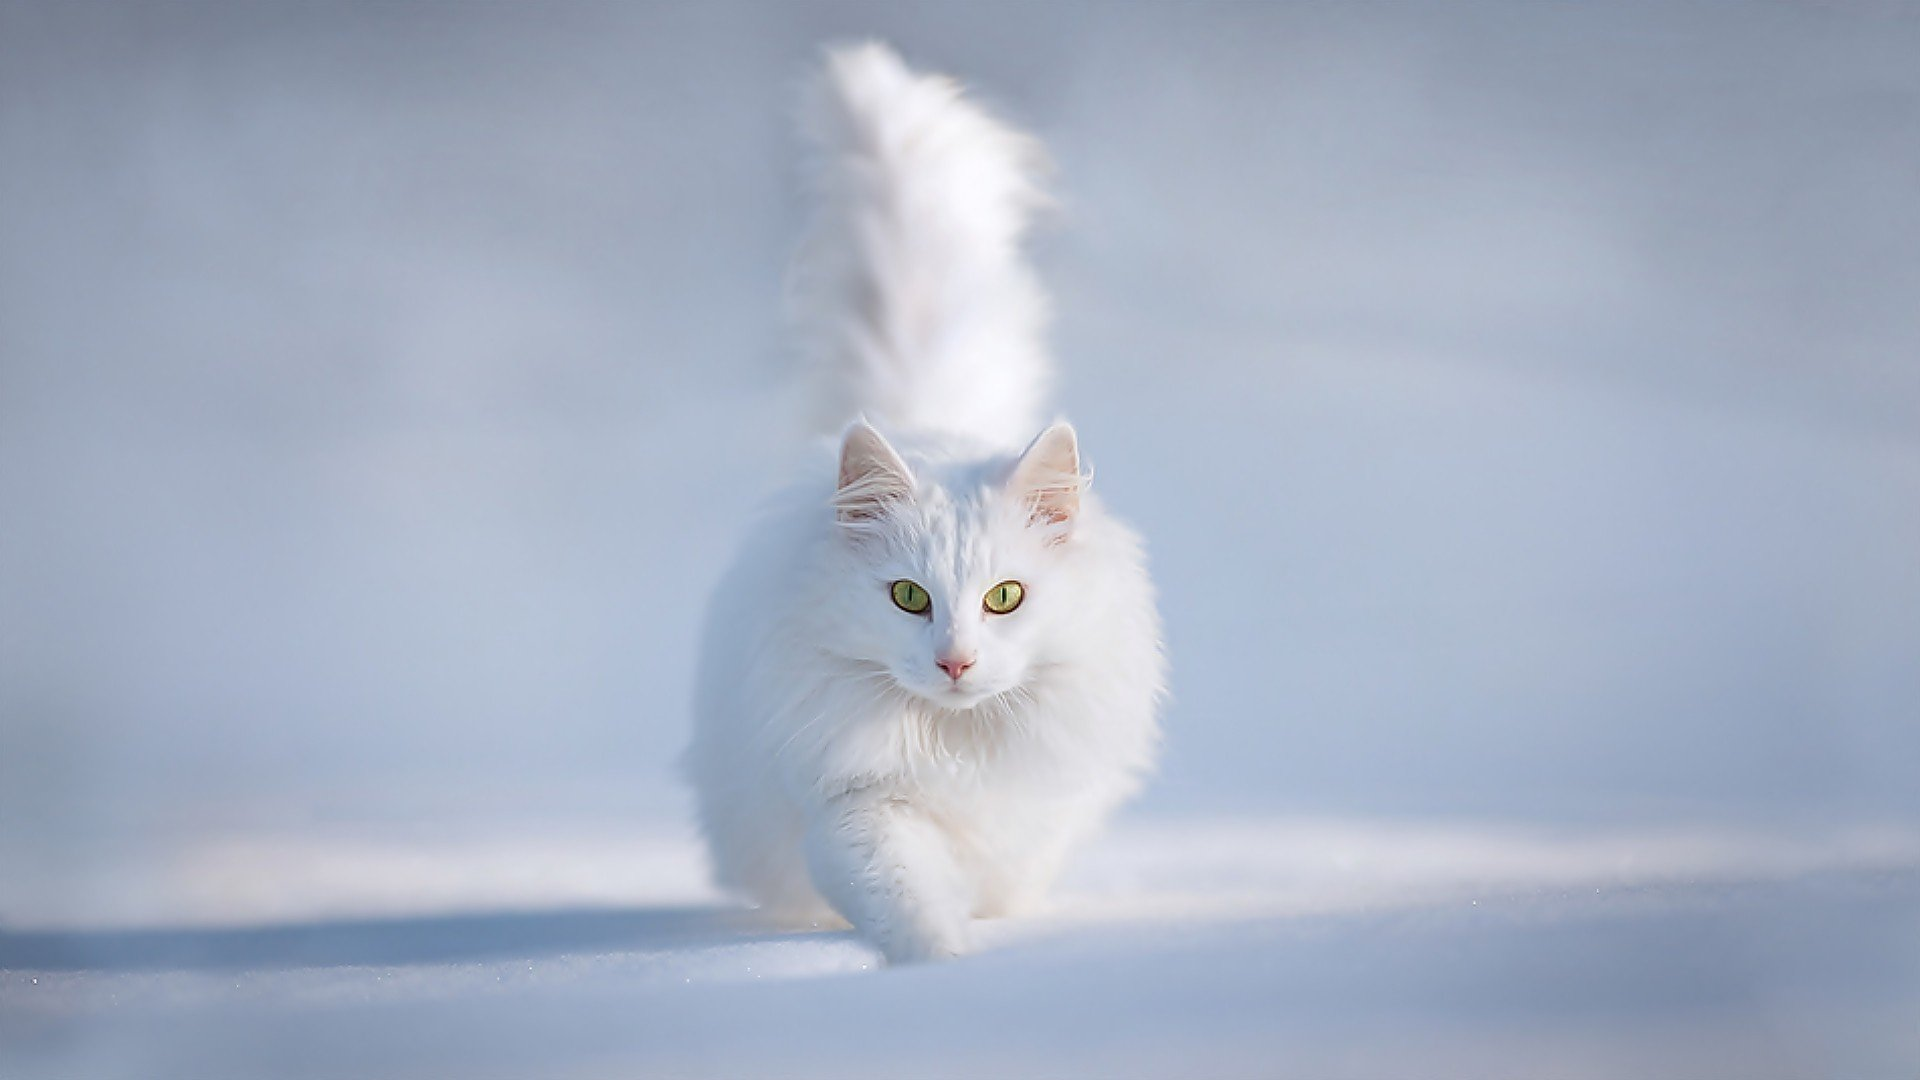 Cat In Snow Wallpaper High Quality WallpapersWallpaper Desktop 1920x1080